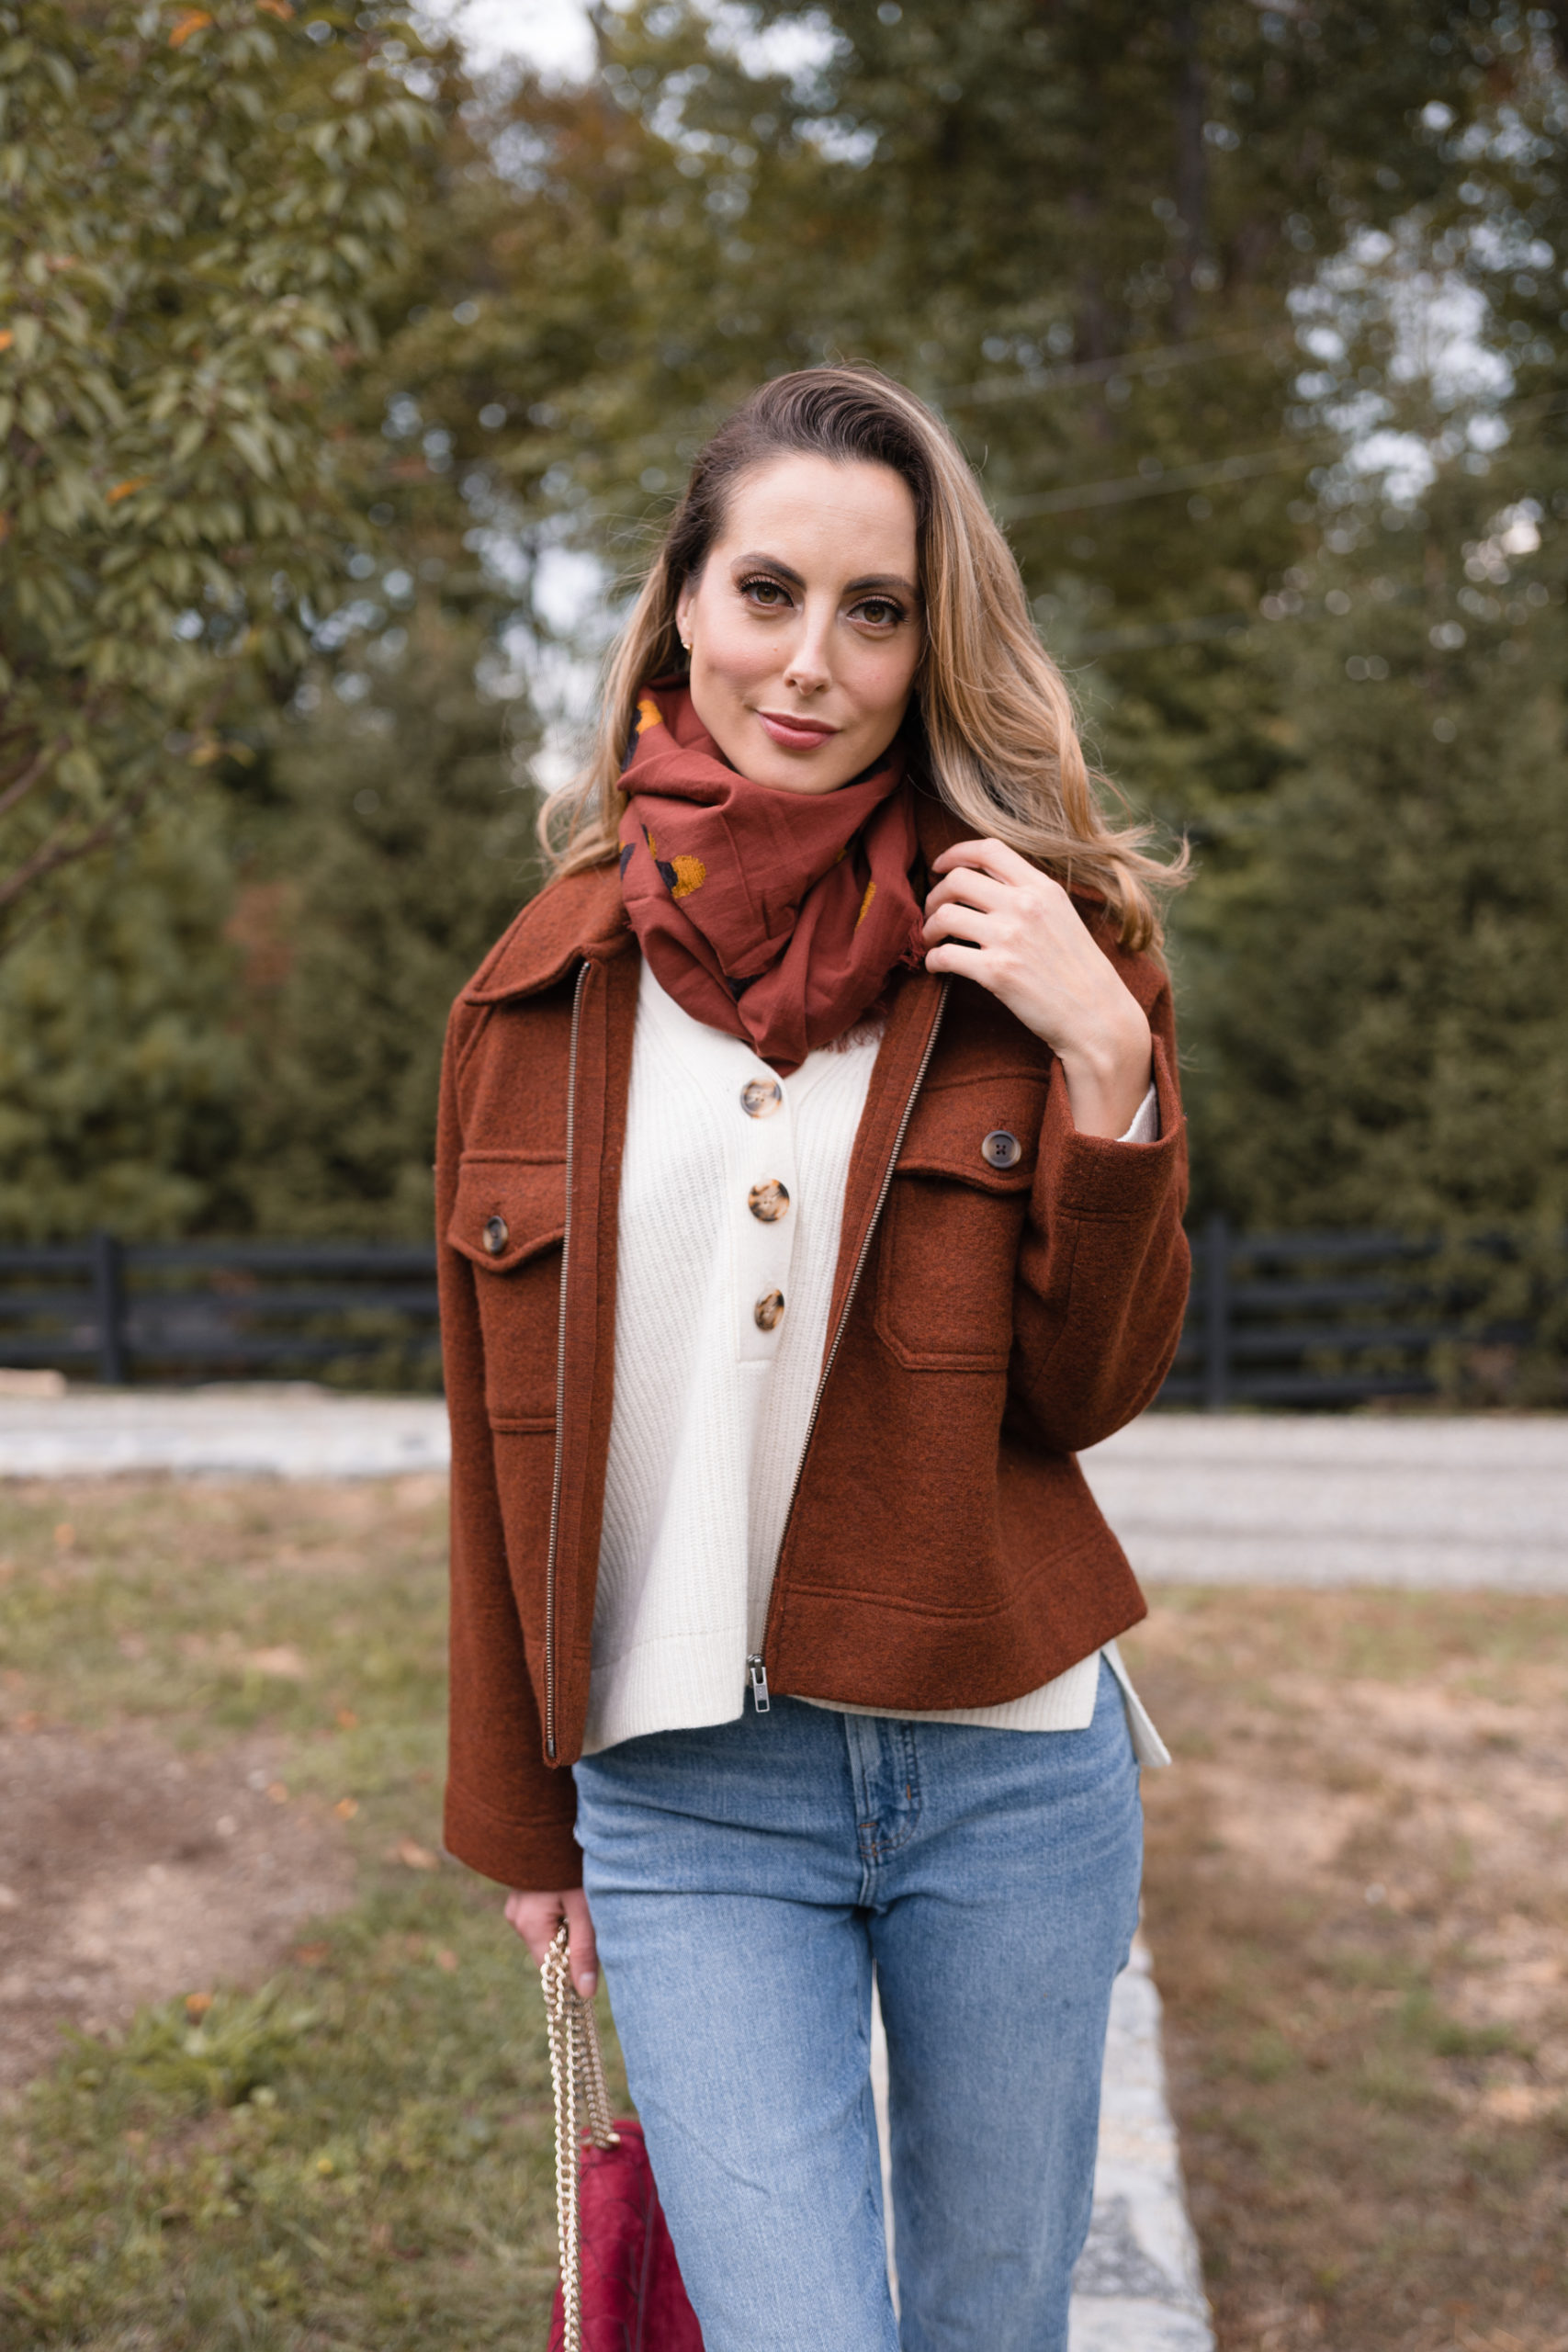 Eva Amurri shares how to navigate complicated relationships during the holidays